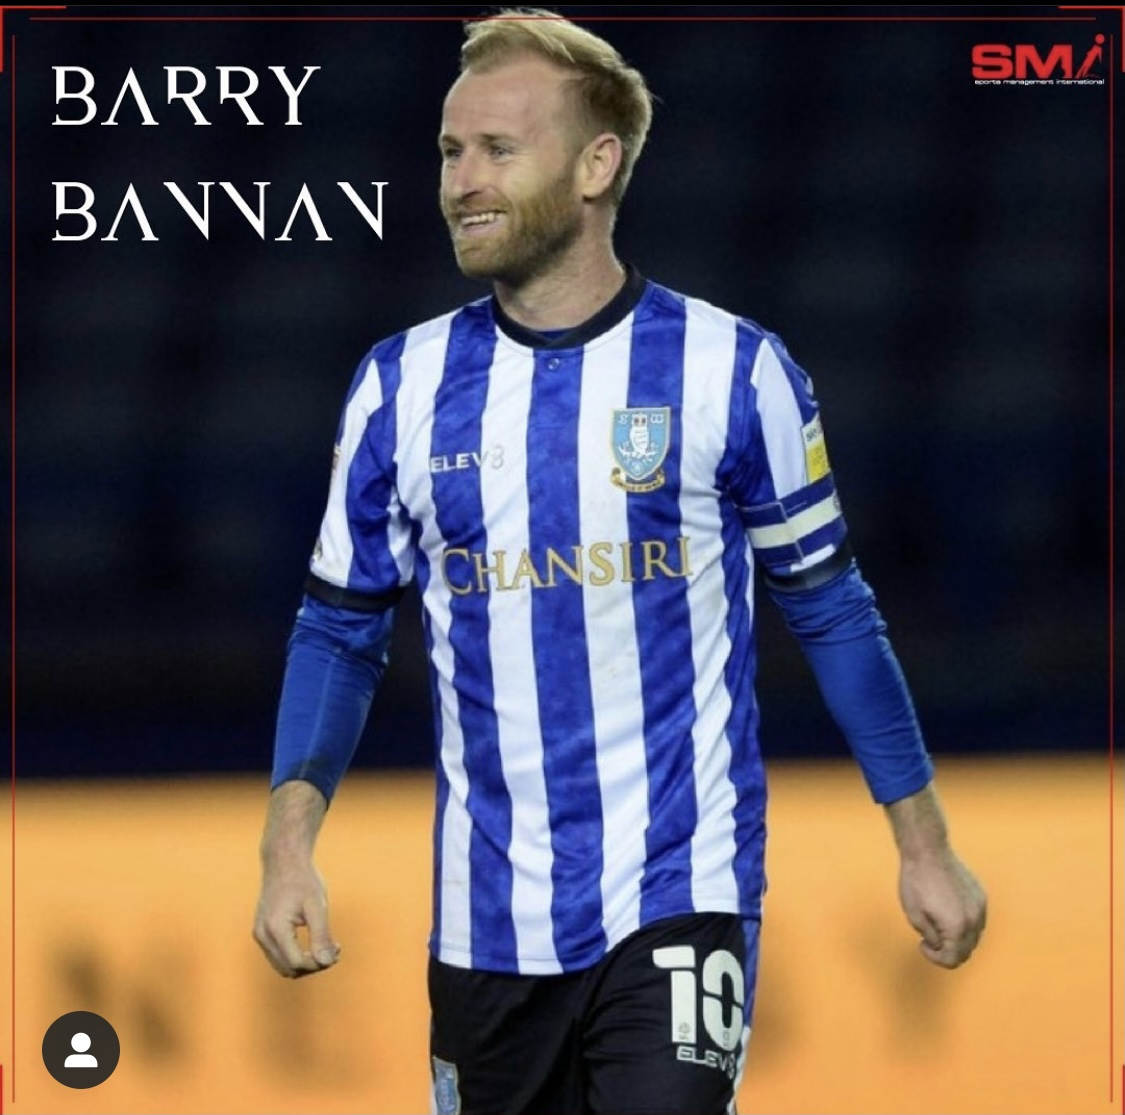 Barry Bannan Player of the year